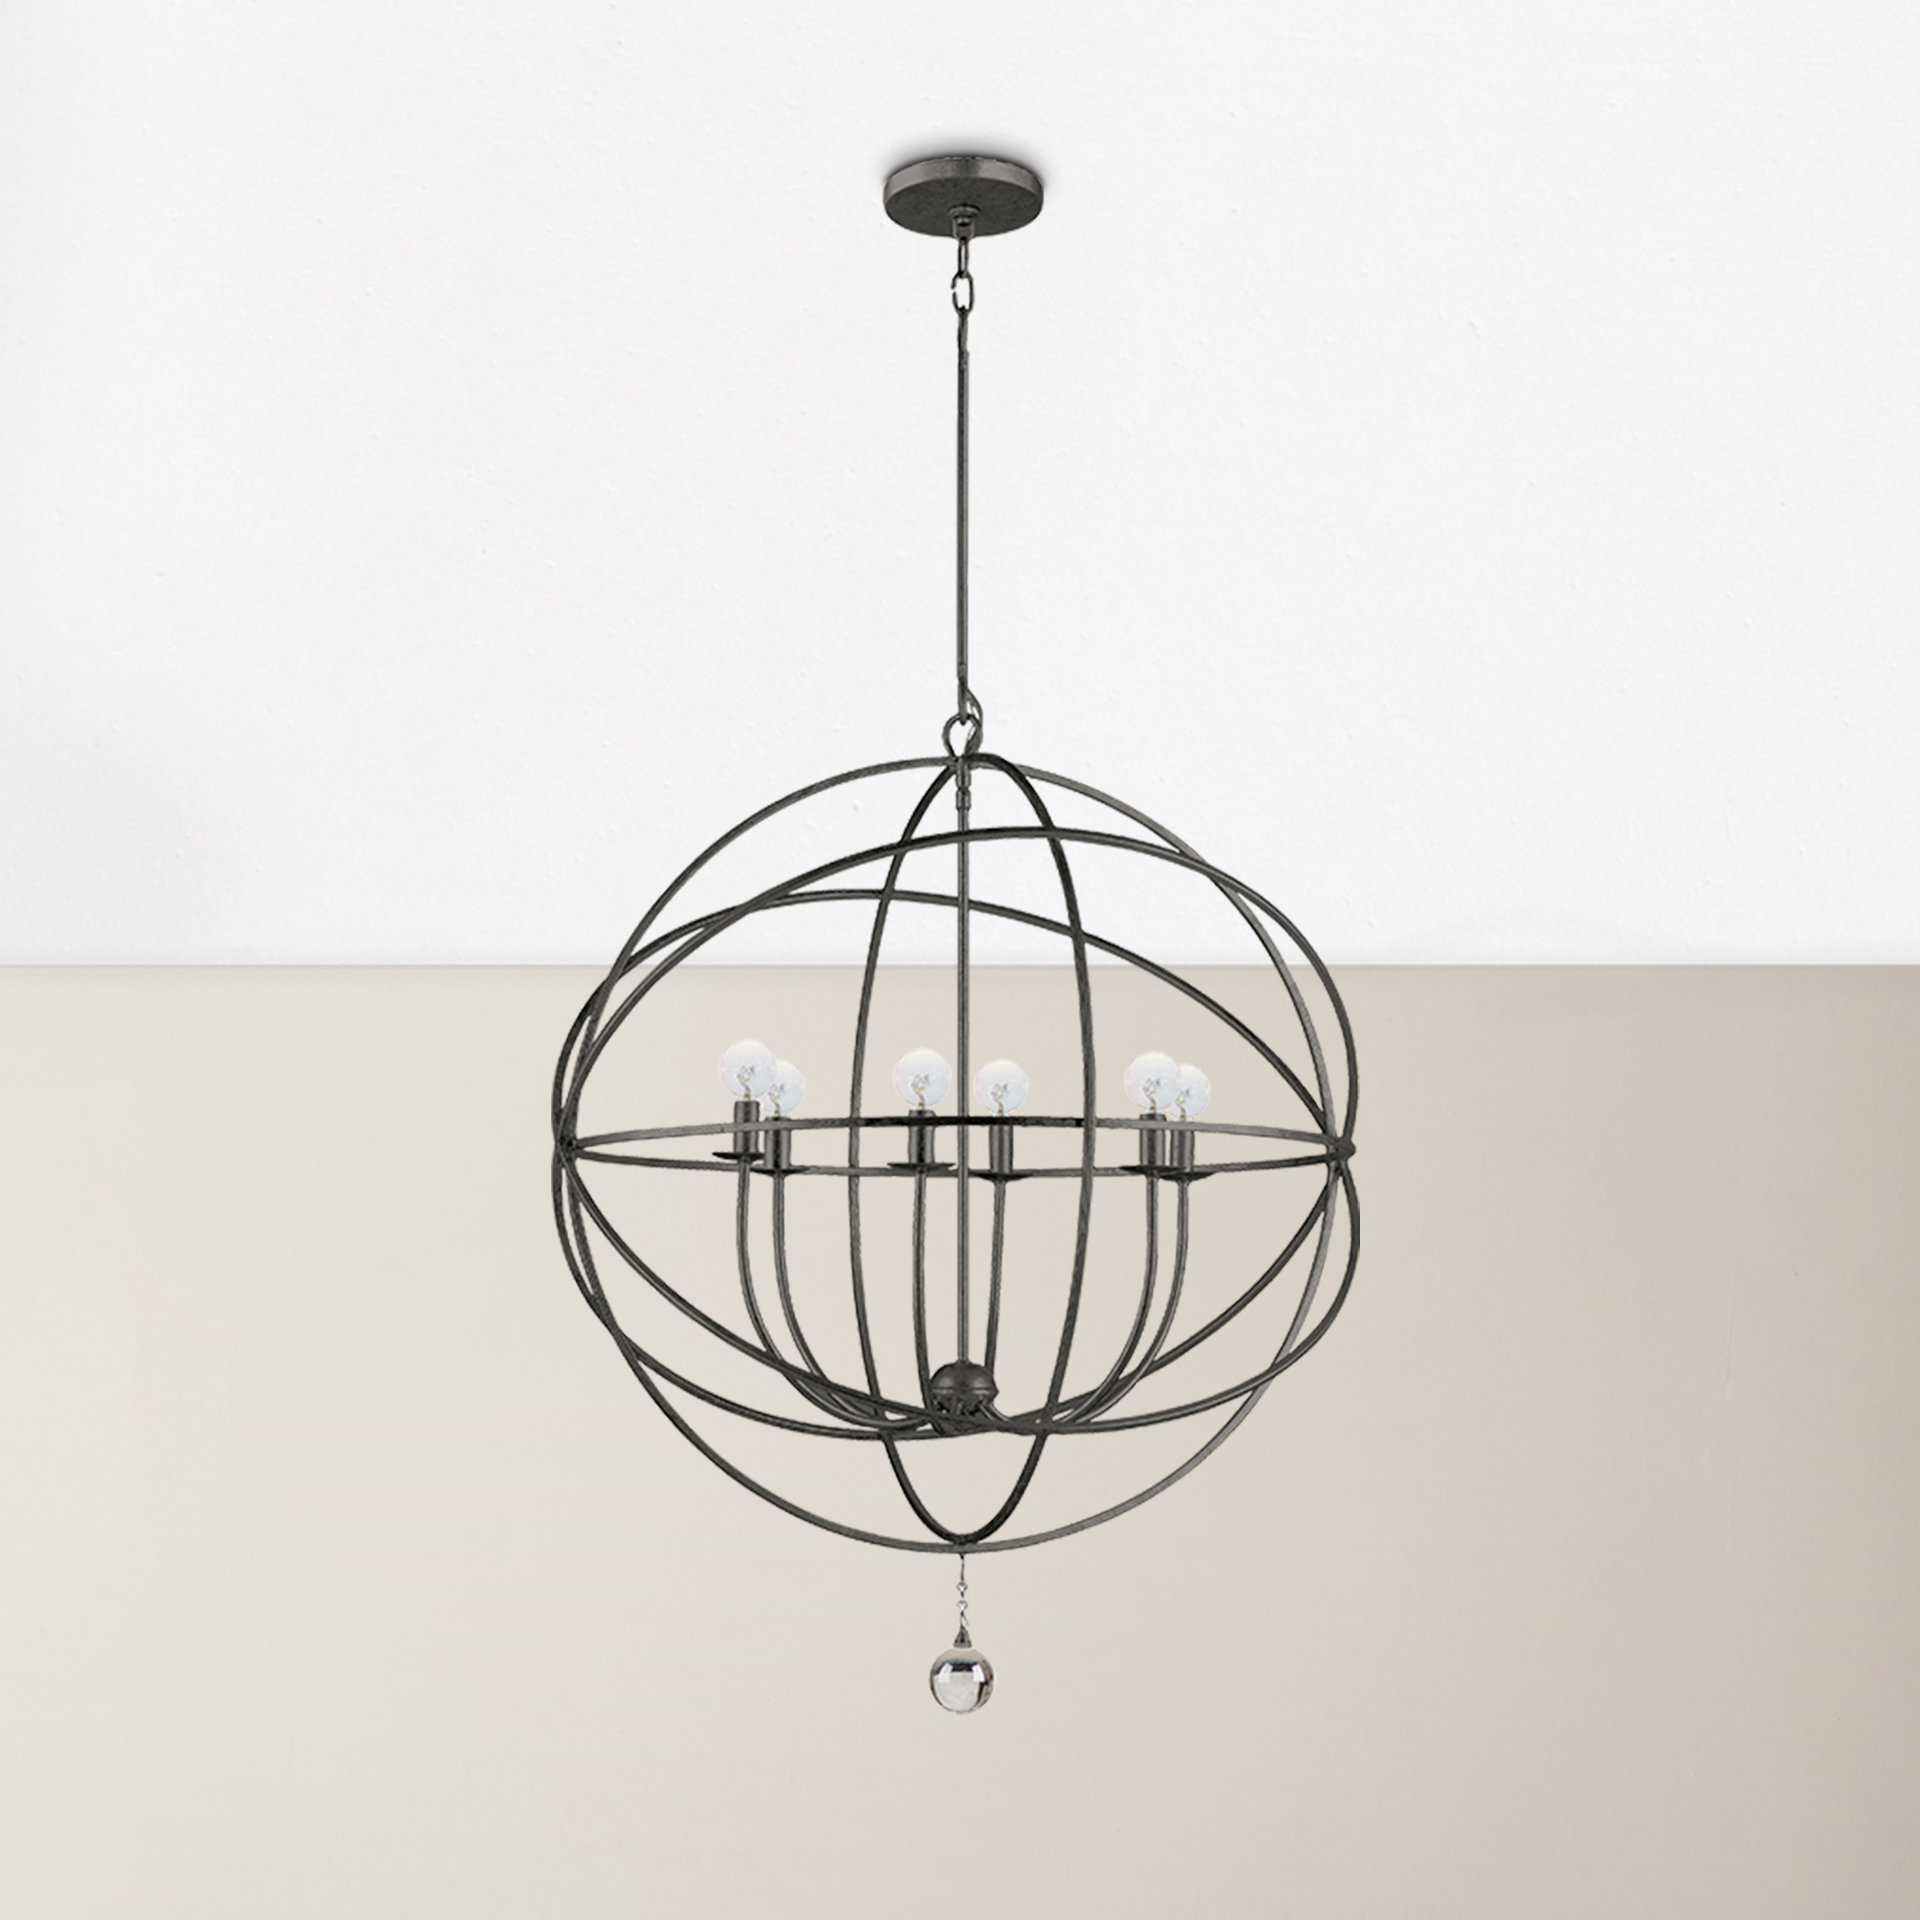 Well Liked Gregoire 6 Light Globe Chandeliers Throughout Willa Arlo Interiors Gregoire 6 Light Globe Chandelier (Gallery 6 of 20)